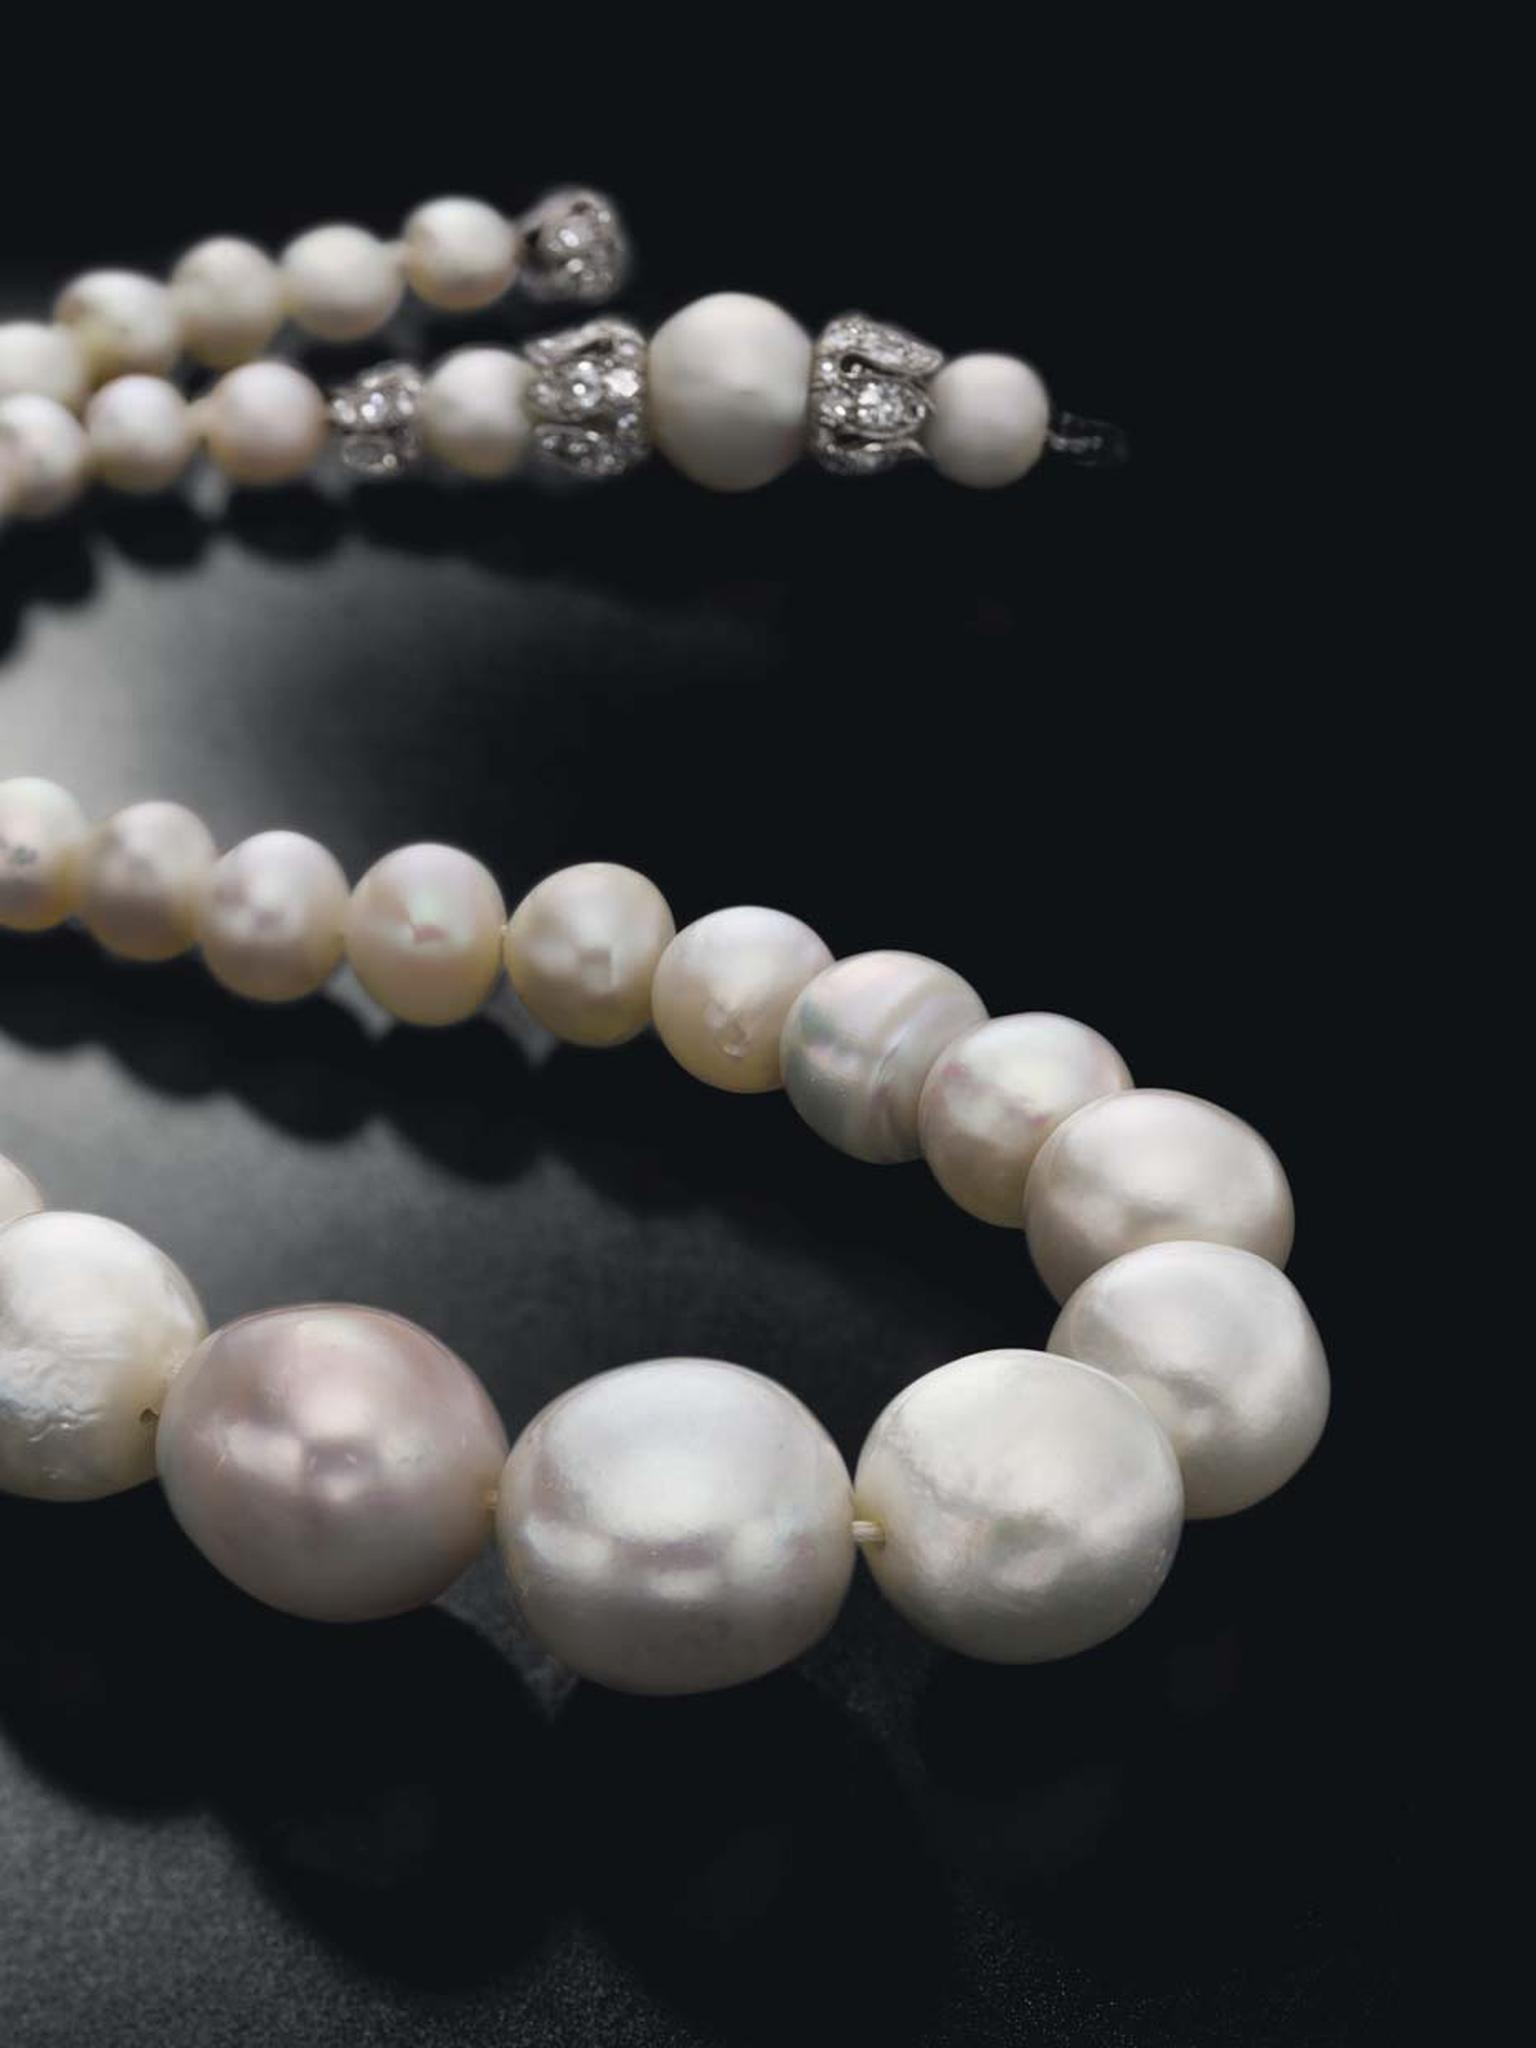 This single-strand, natural saltwater pearl necklace sold for $3.89 million at Christie's Magnificent Jewels auction on 13 May 2015.